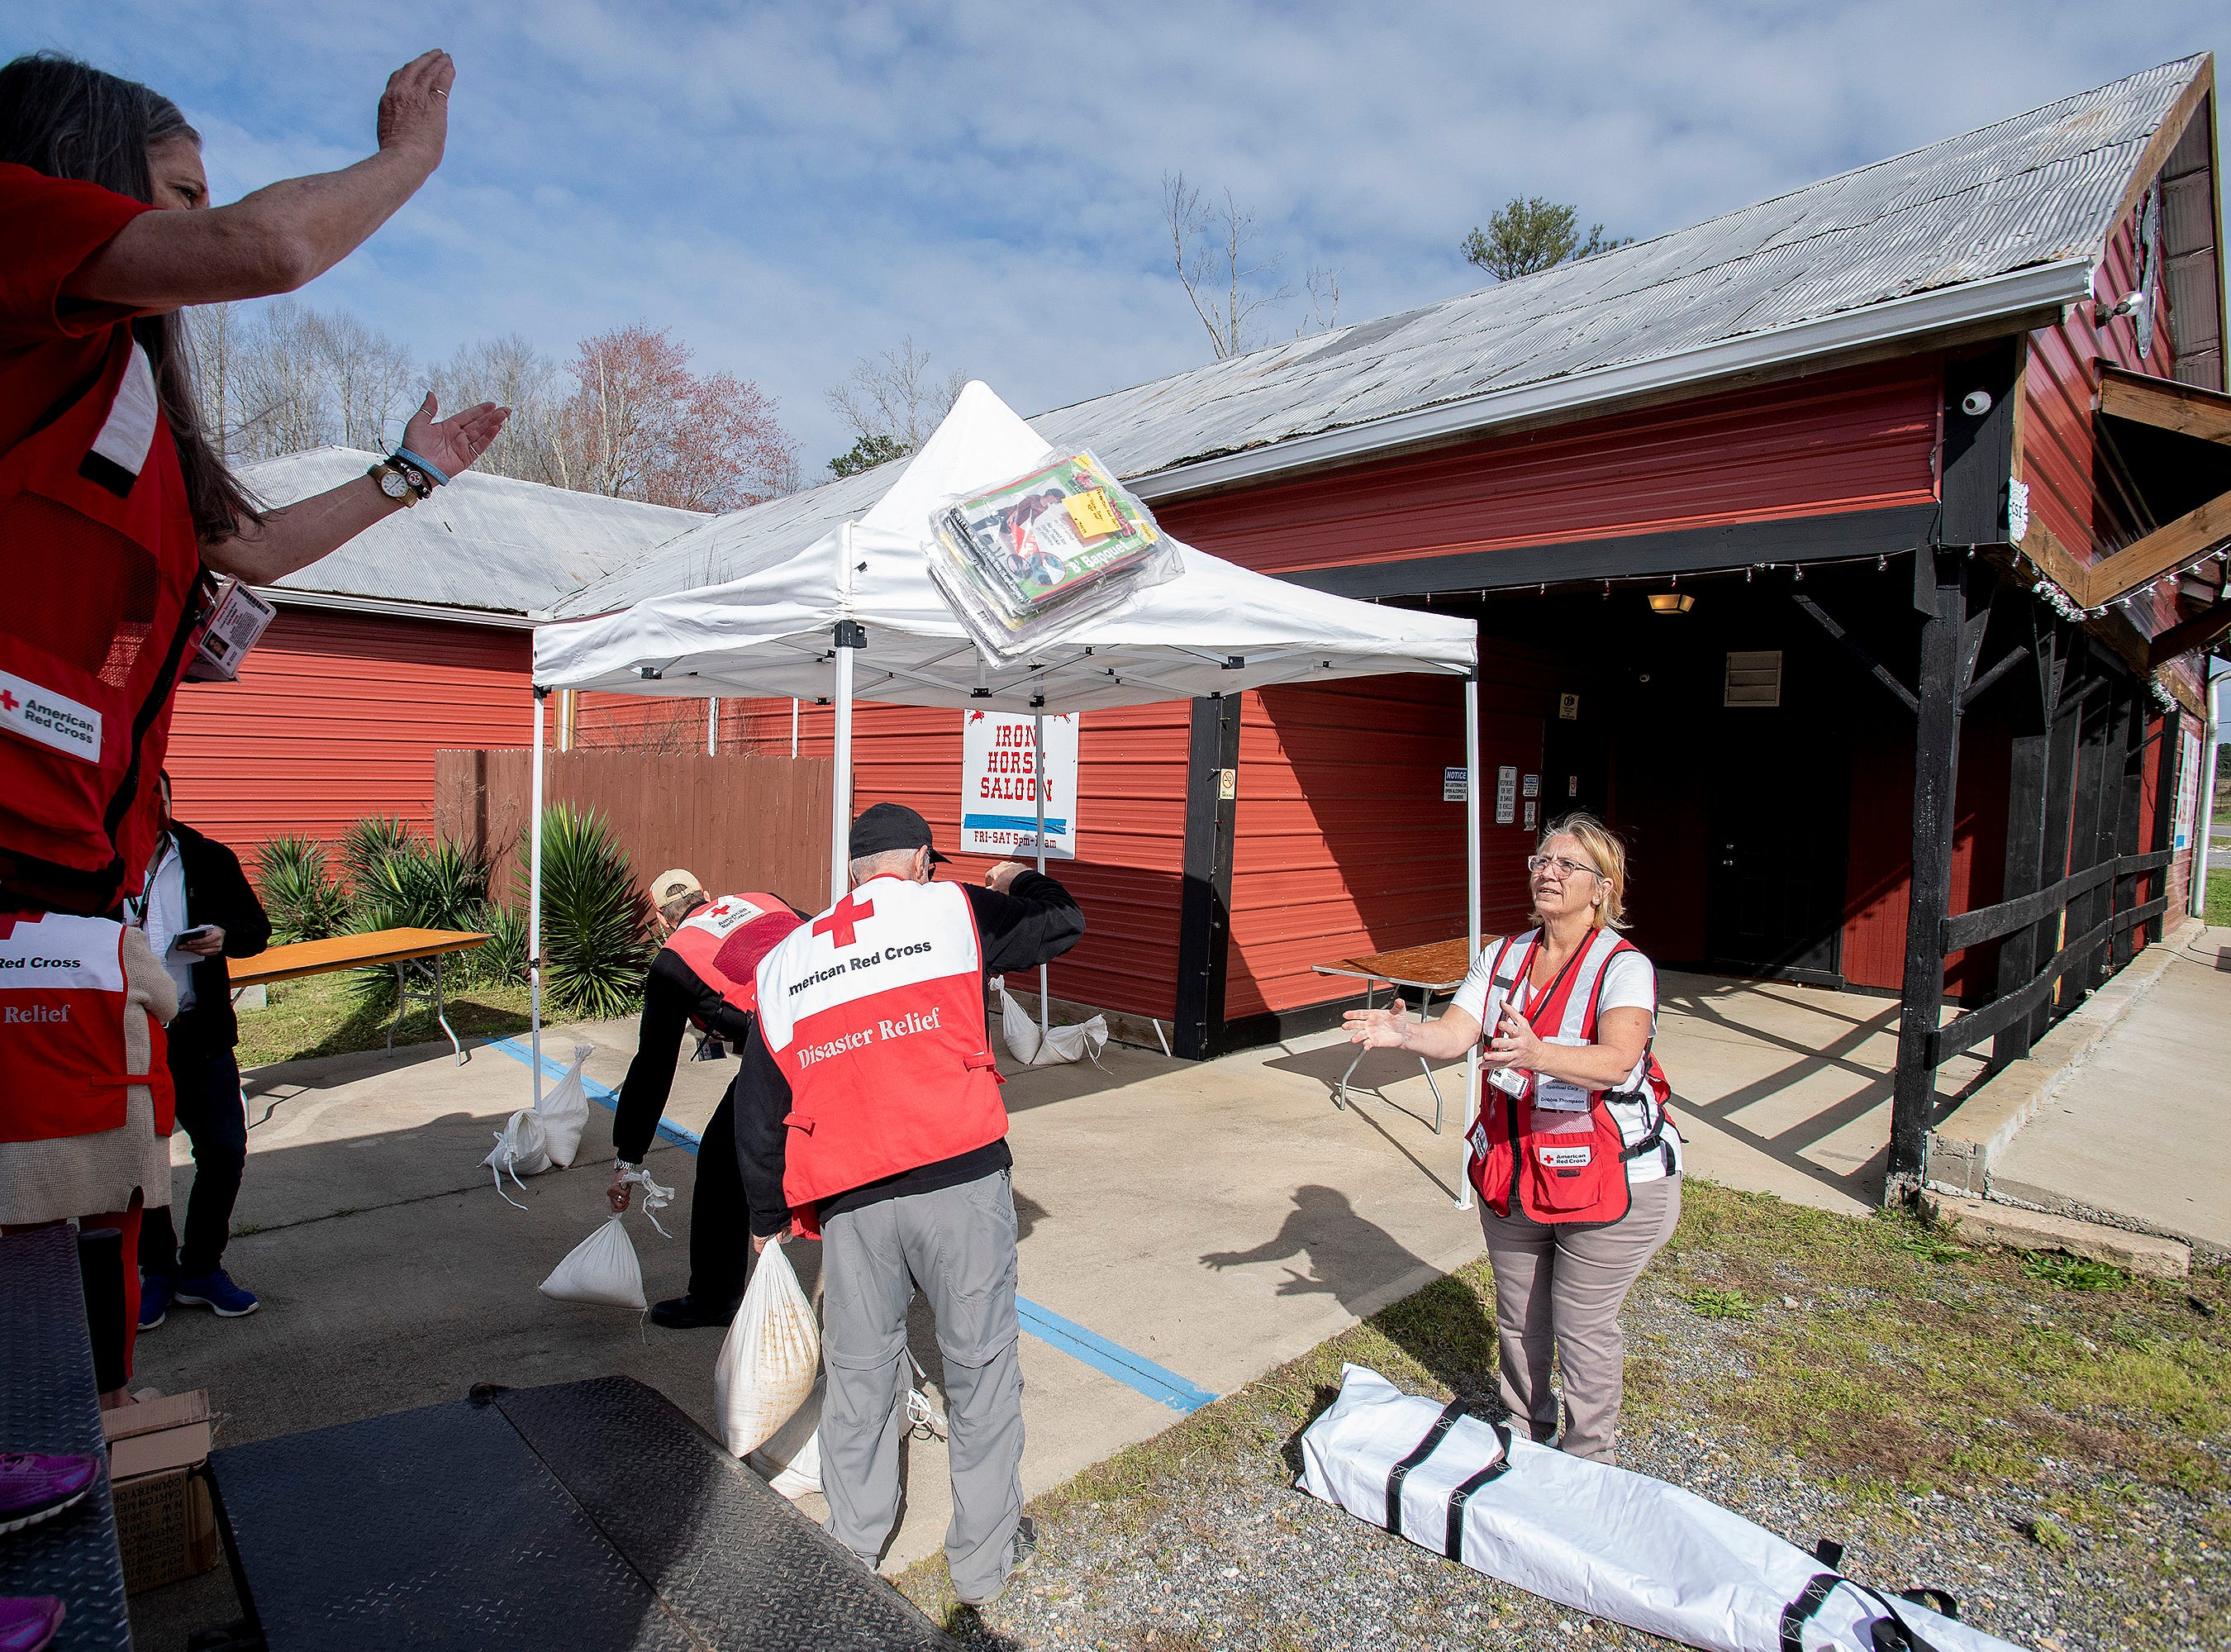 The Red Cross sets up a station at the Iron Horse Saloon in Beauregard, Ala., on Friday March 8, 2019.